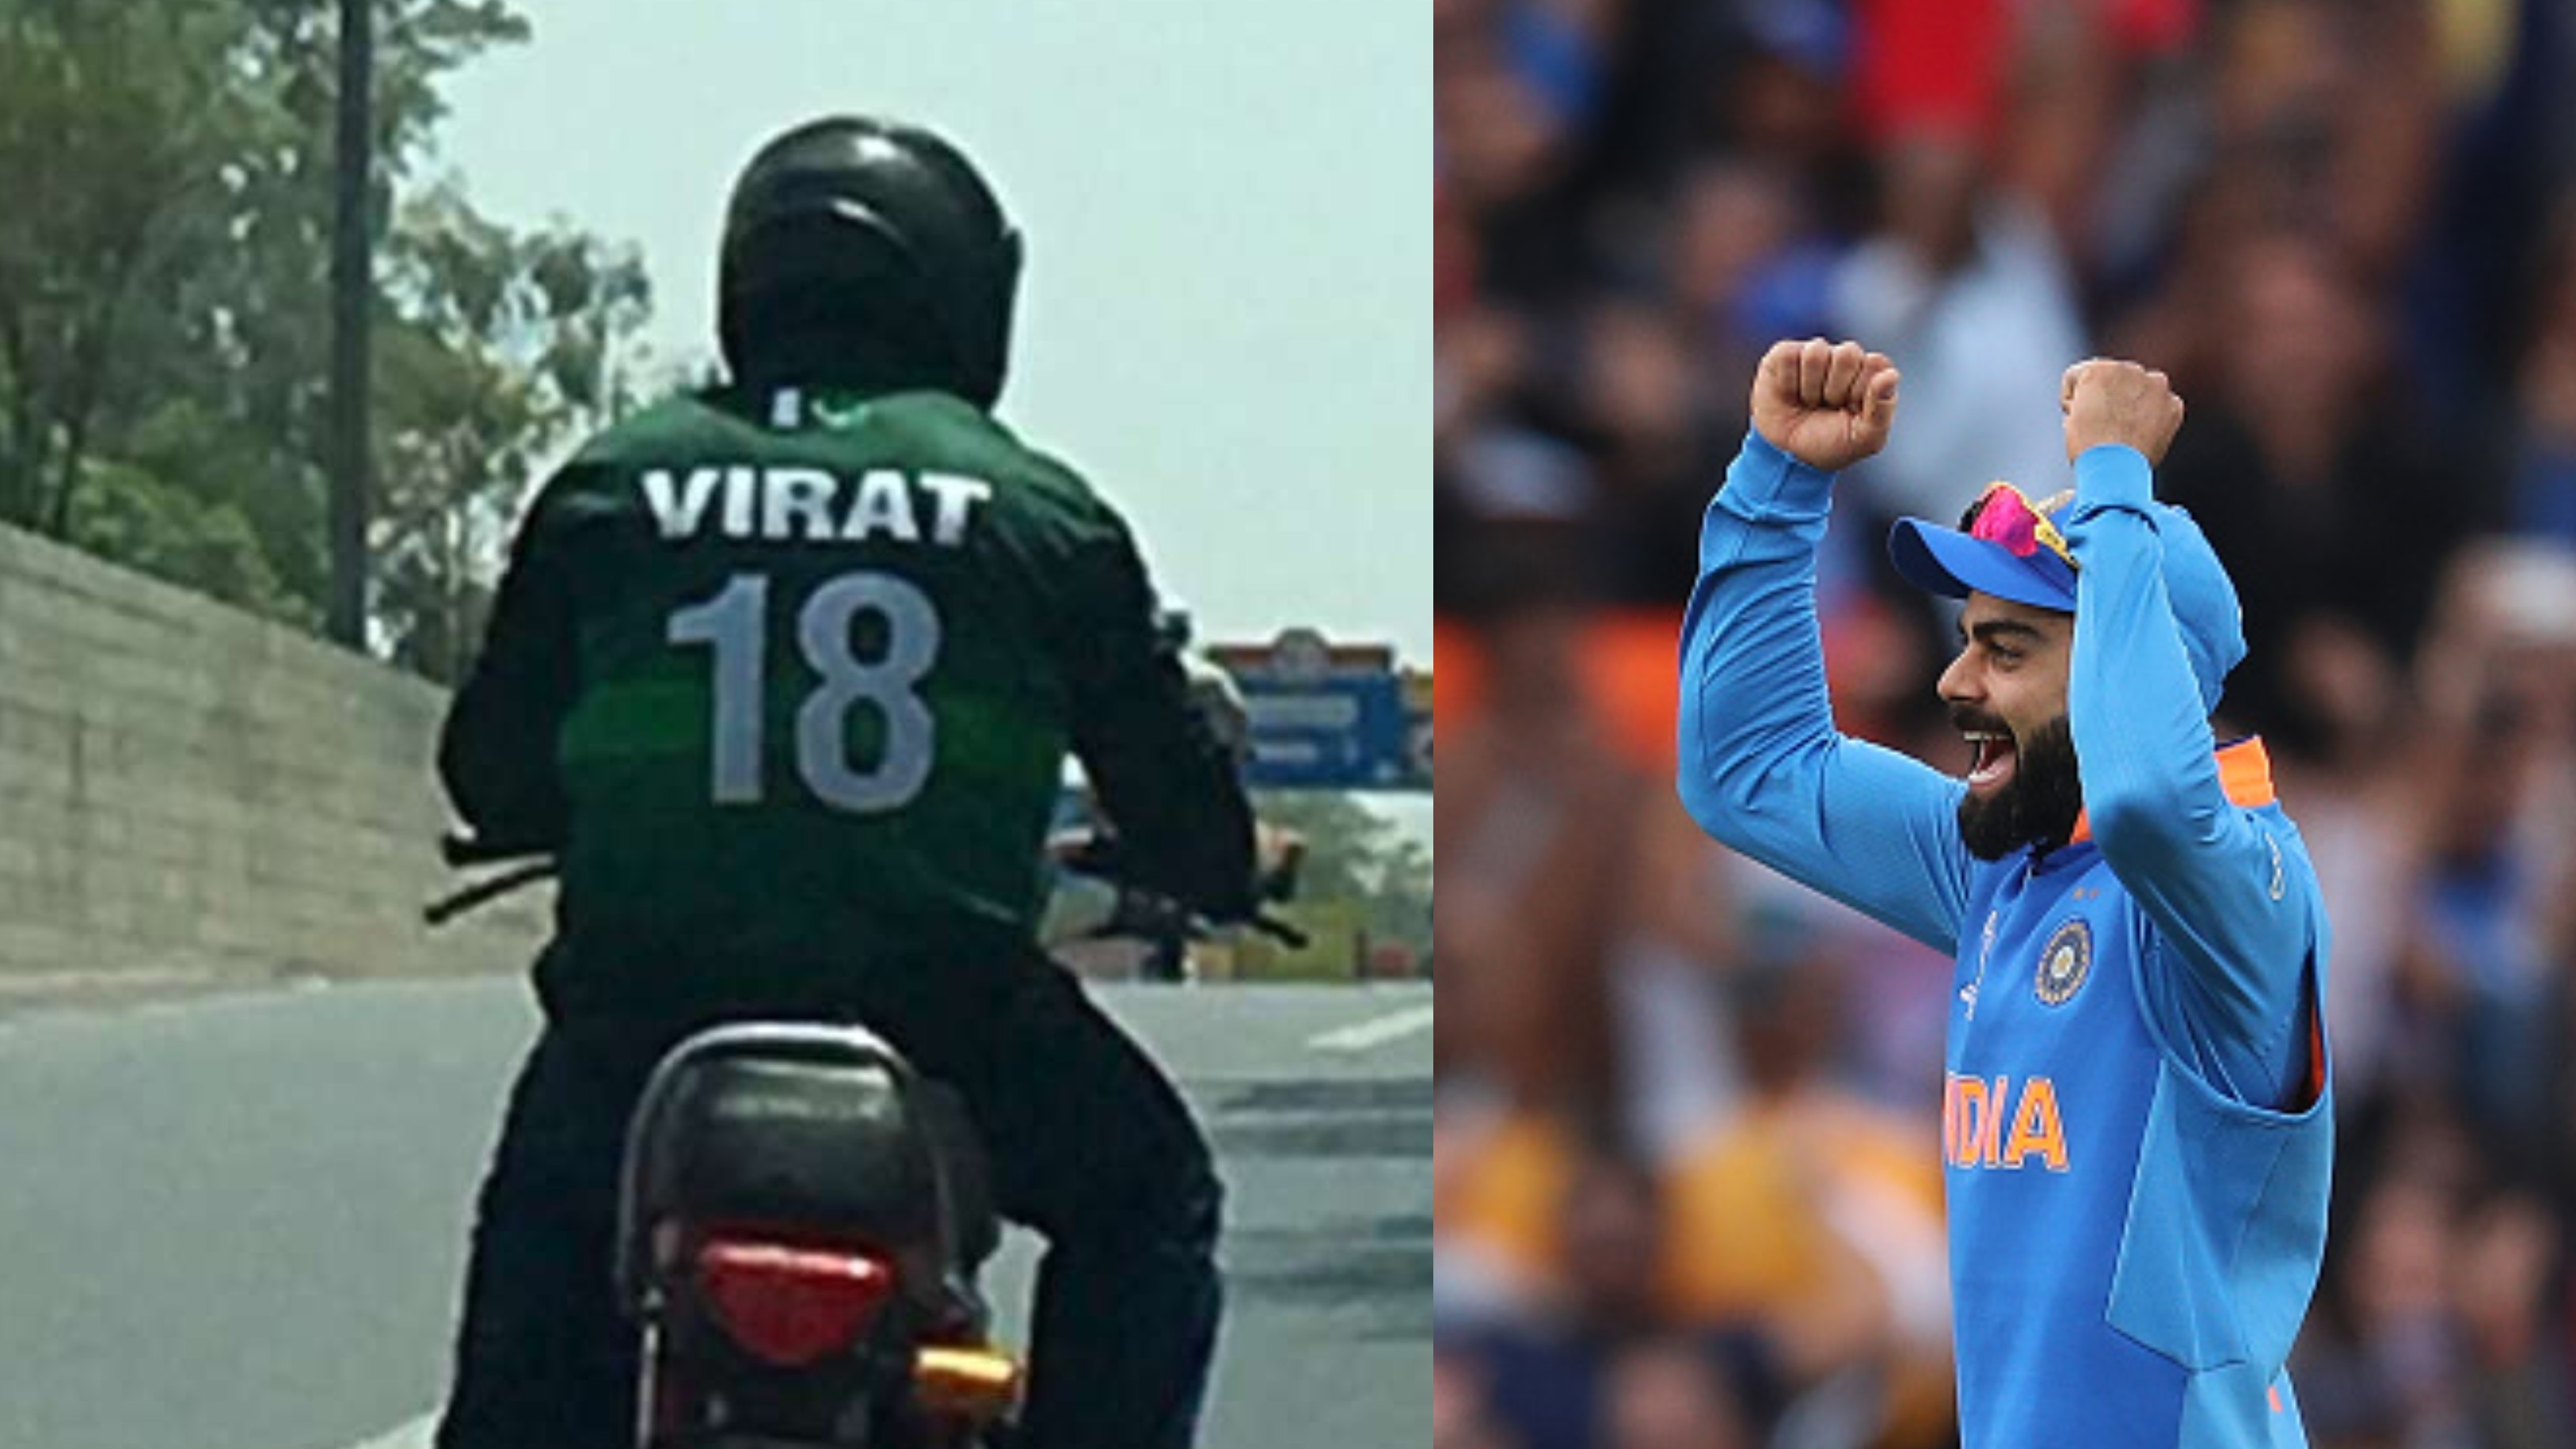 CWC 2019: A fan spotted wearing Pakistan World Cup kit with Virat Kohli's name in Lahore